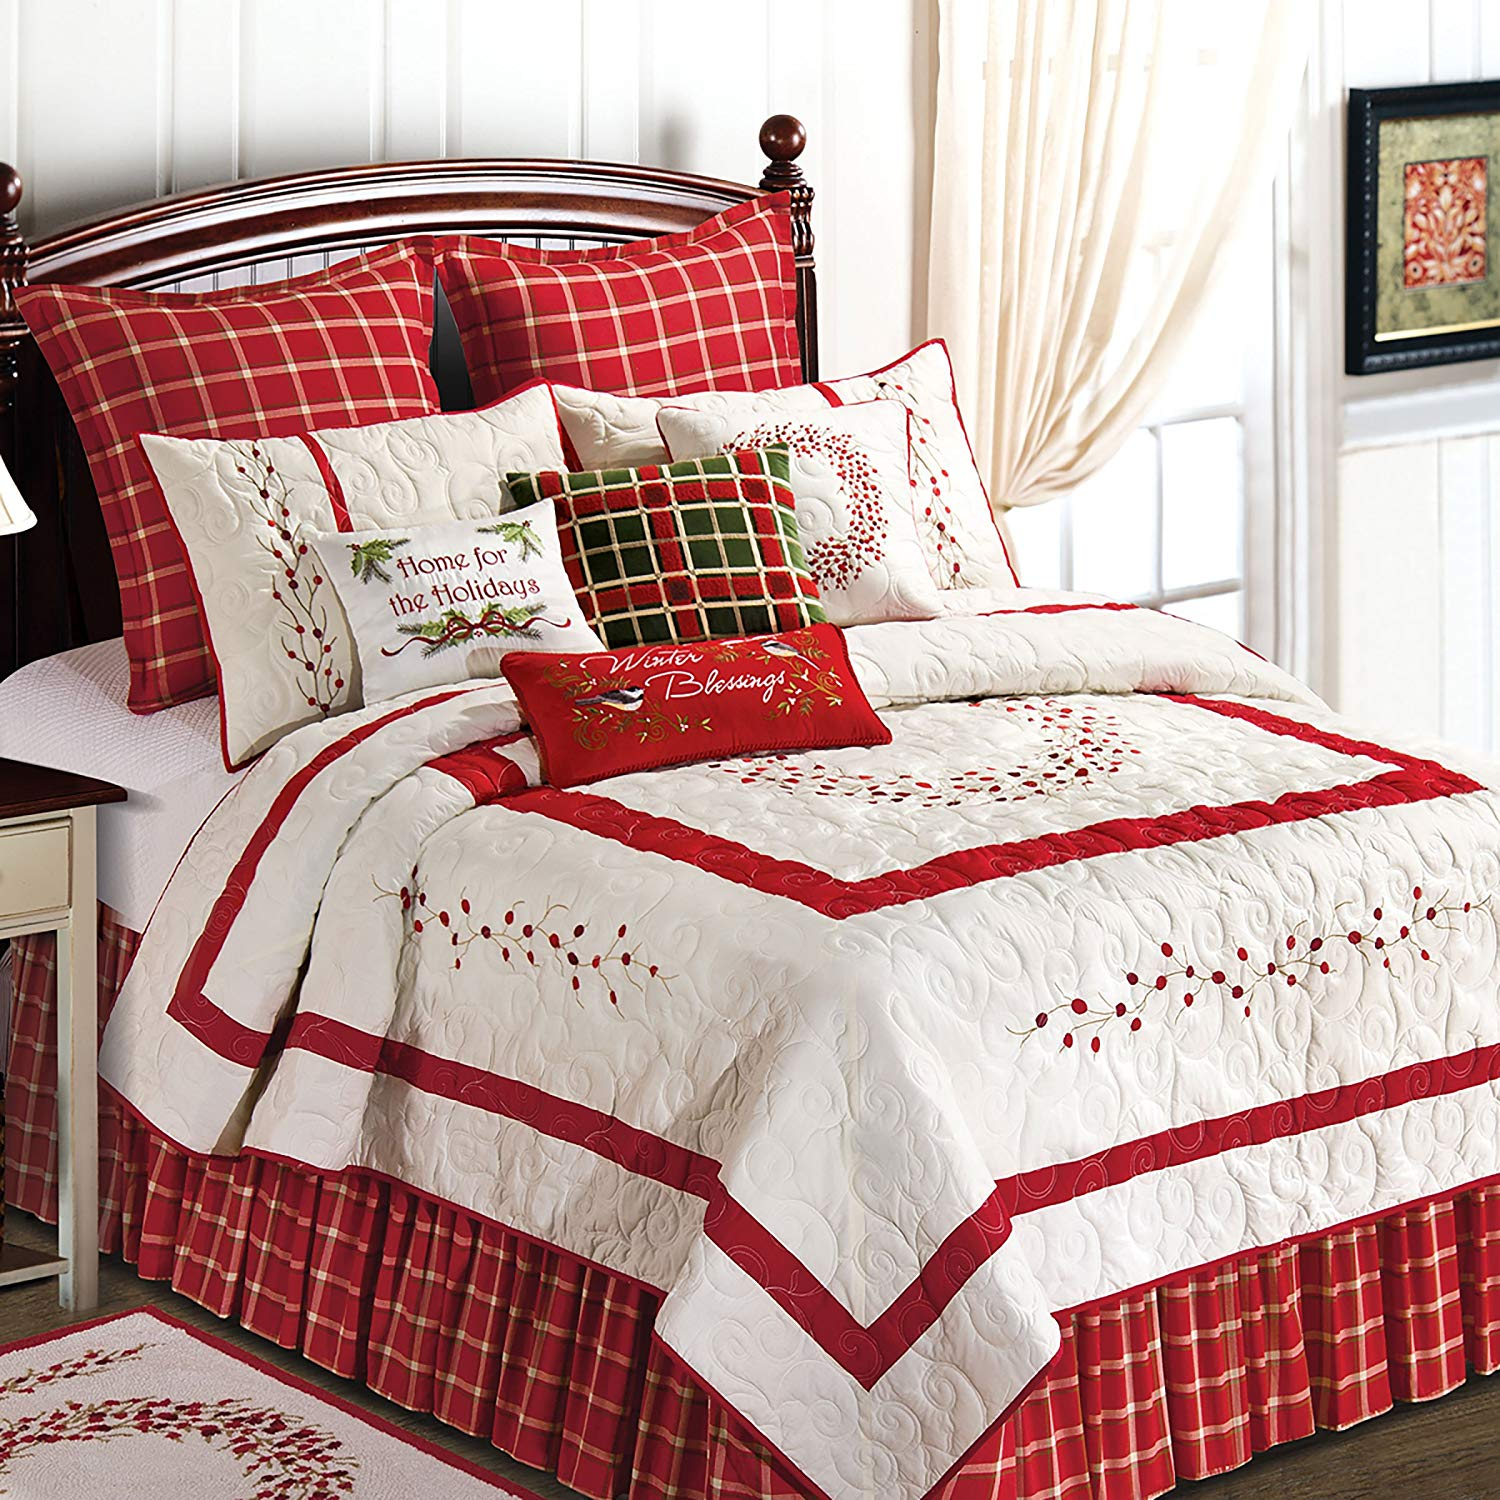 Buy C&F's Holiday Quilt - Best Christmas Bedspreads And Quits